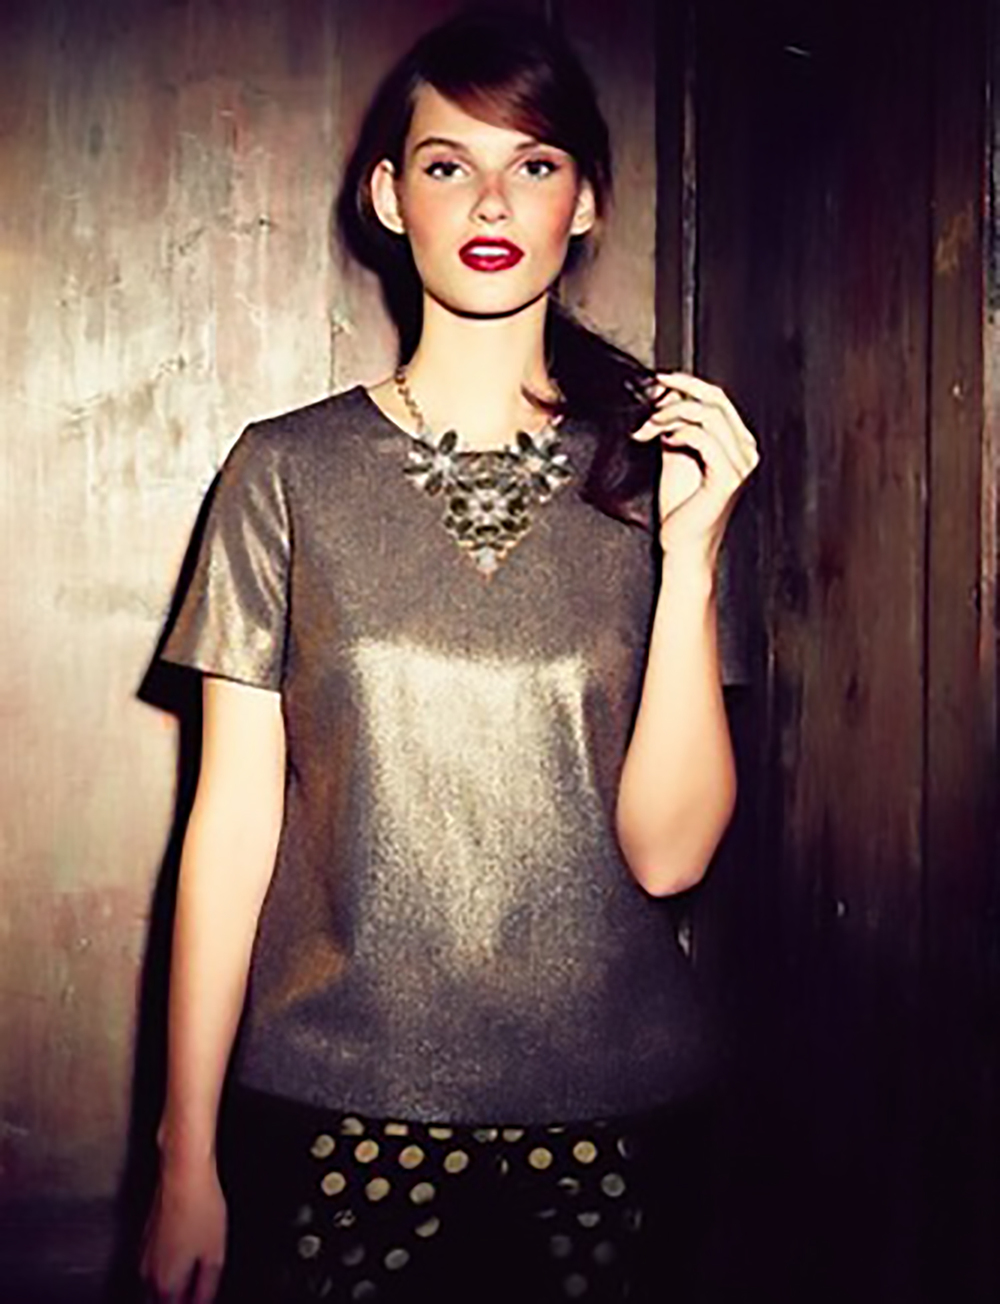 boden metallic top holiday separates copy 1500.jpg